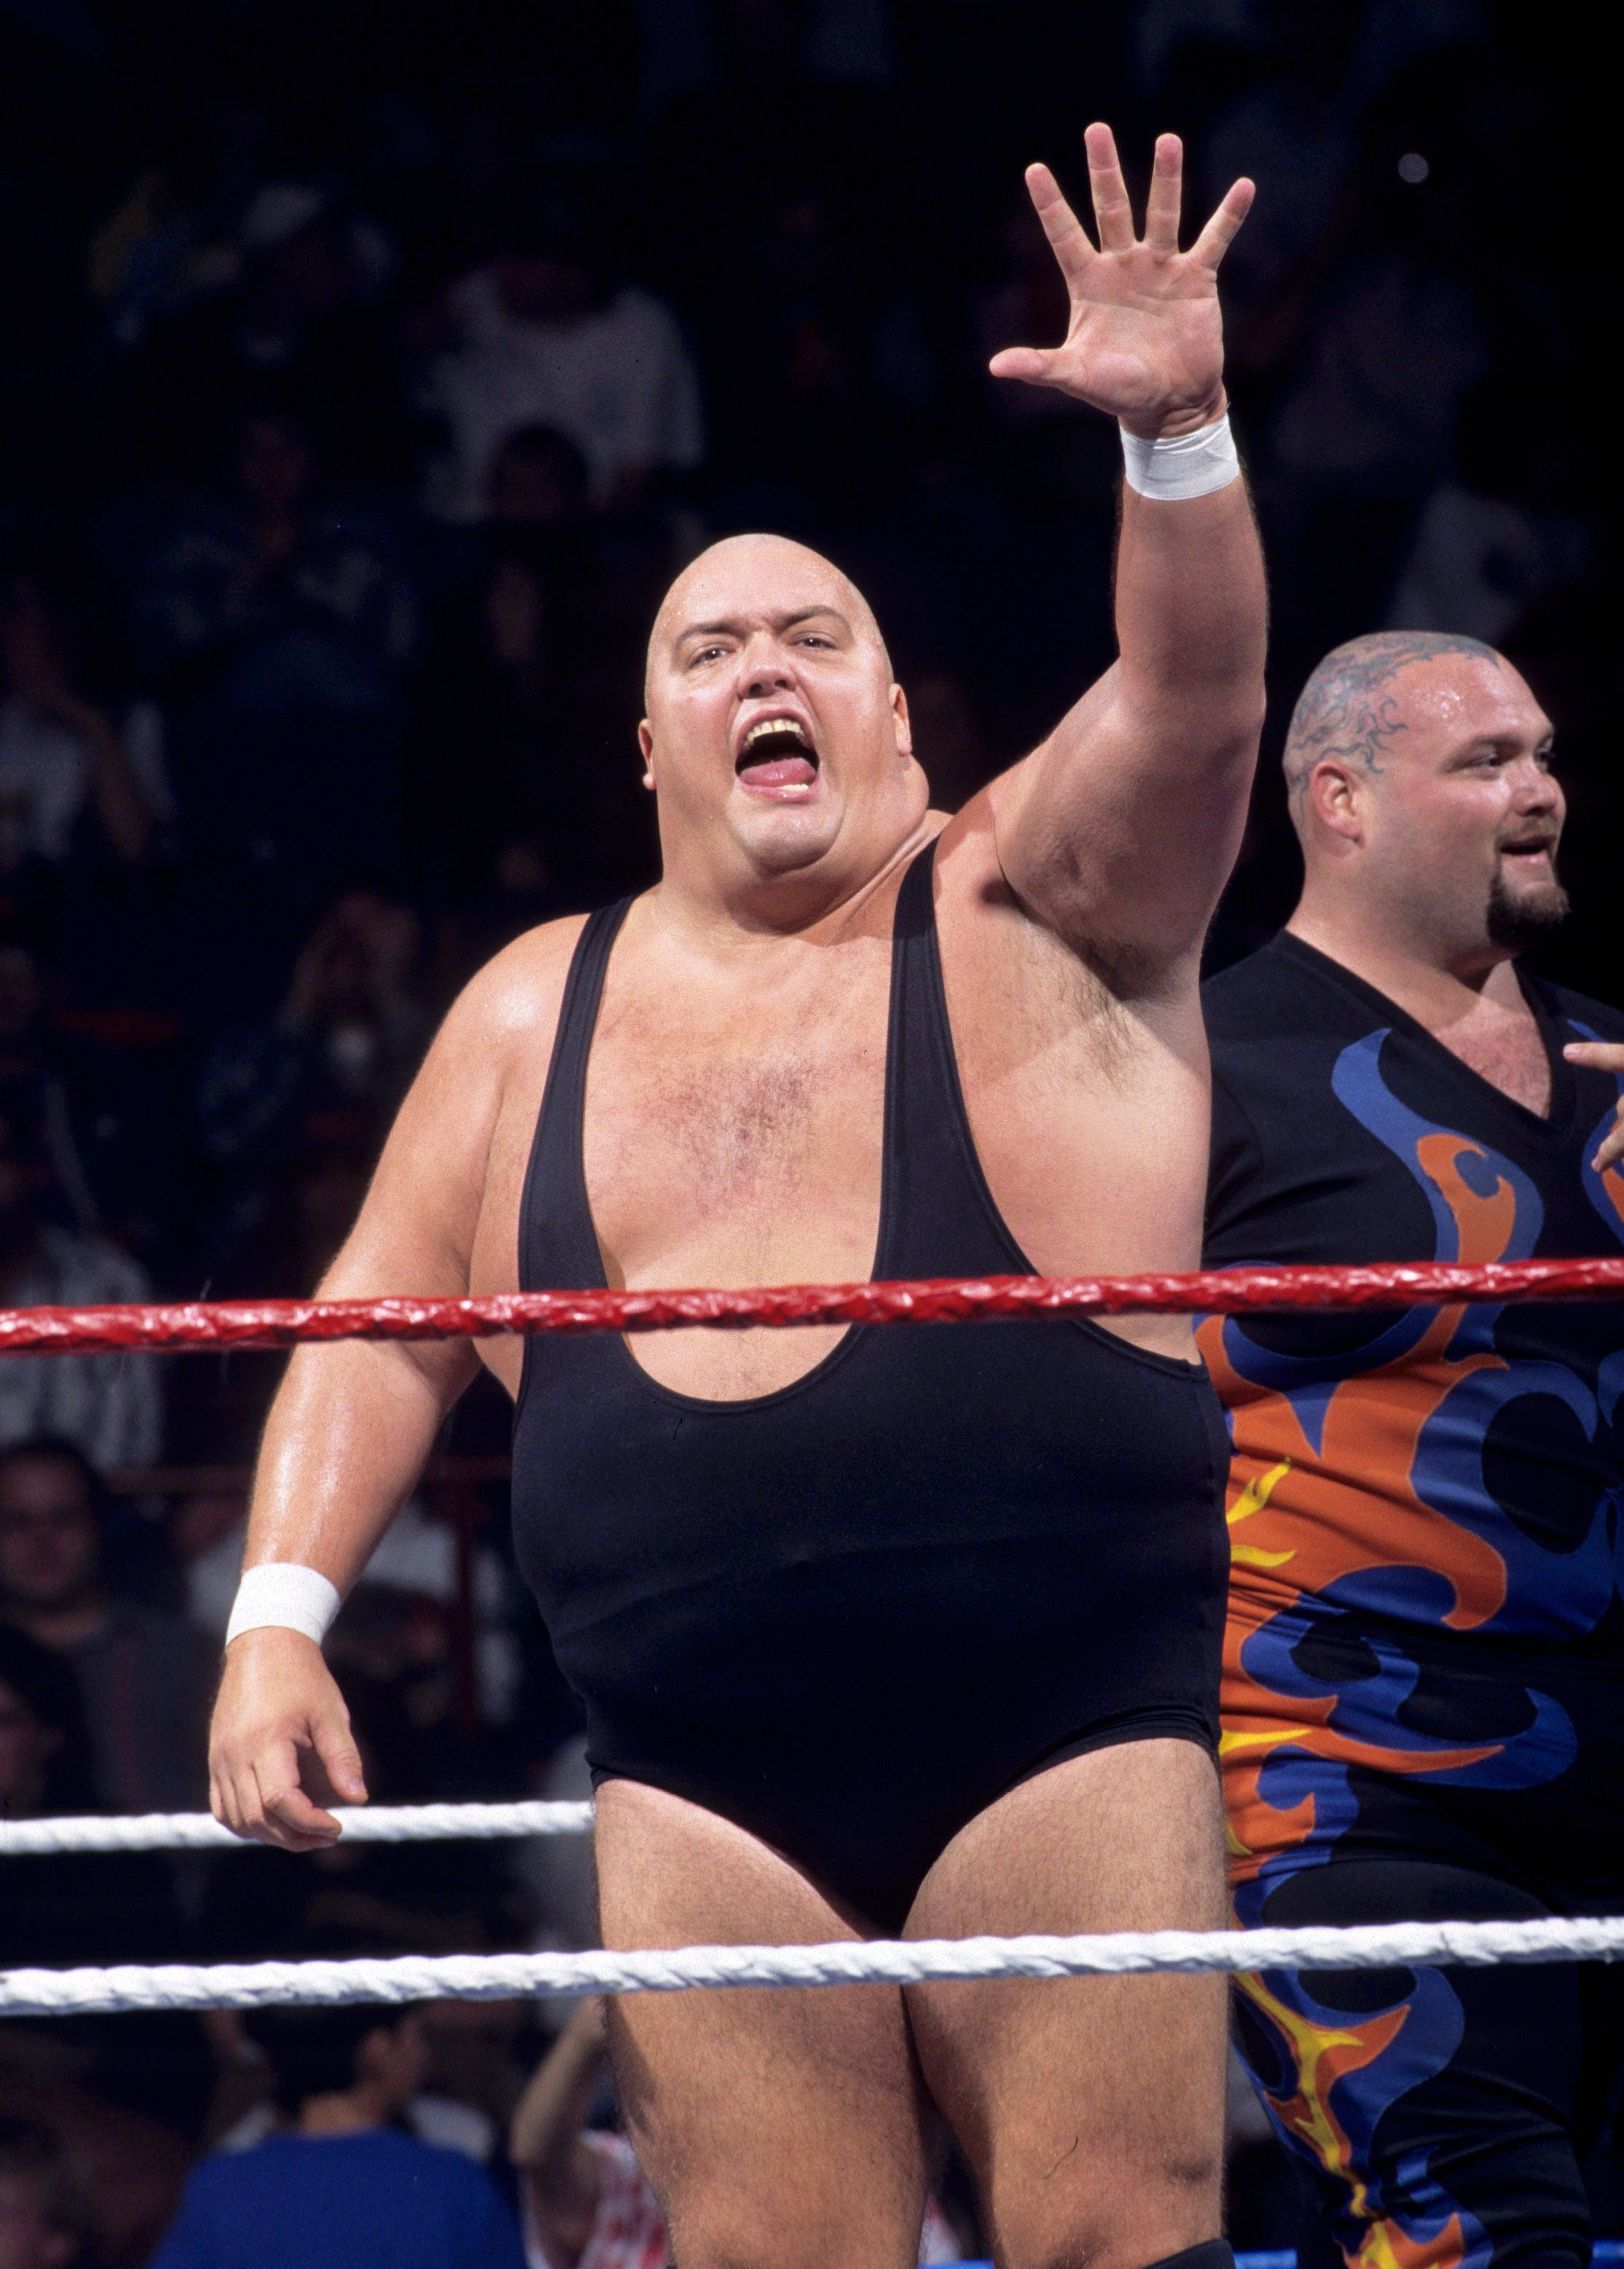 This image provided by the WWE shows professional wrestler King Kong Bundy. Promoter and longtime friend David Herro says Bundy, whose real name was Christopher Pallies, died on Monday, March 4, 2019. The 6-foot-4, 458-pound wrestler made his World Wrestling Federation debut in 1981 and was best known for facing Hulk Hogan in 1986 in a steel cage match at WrestleMania 2.